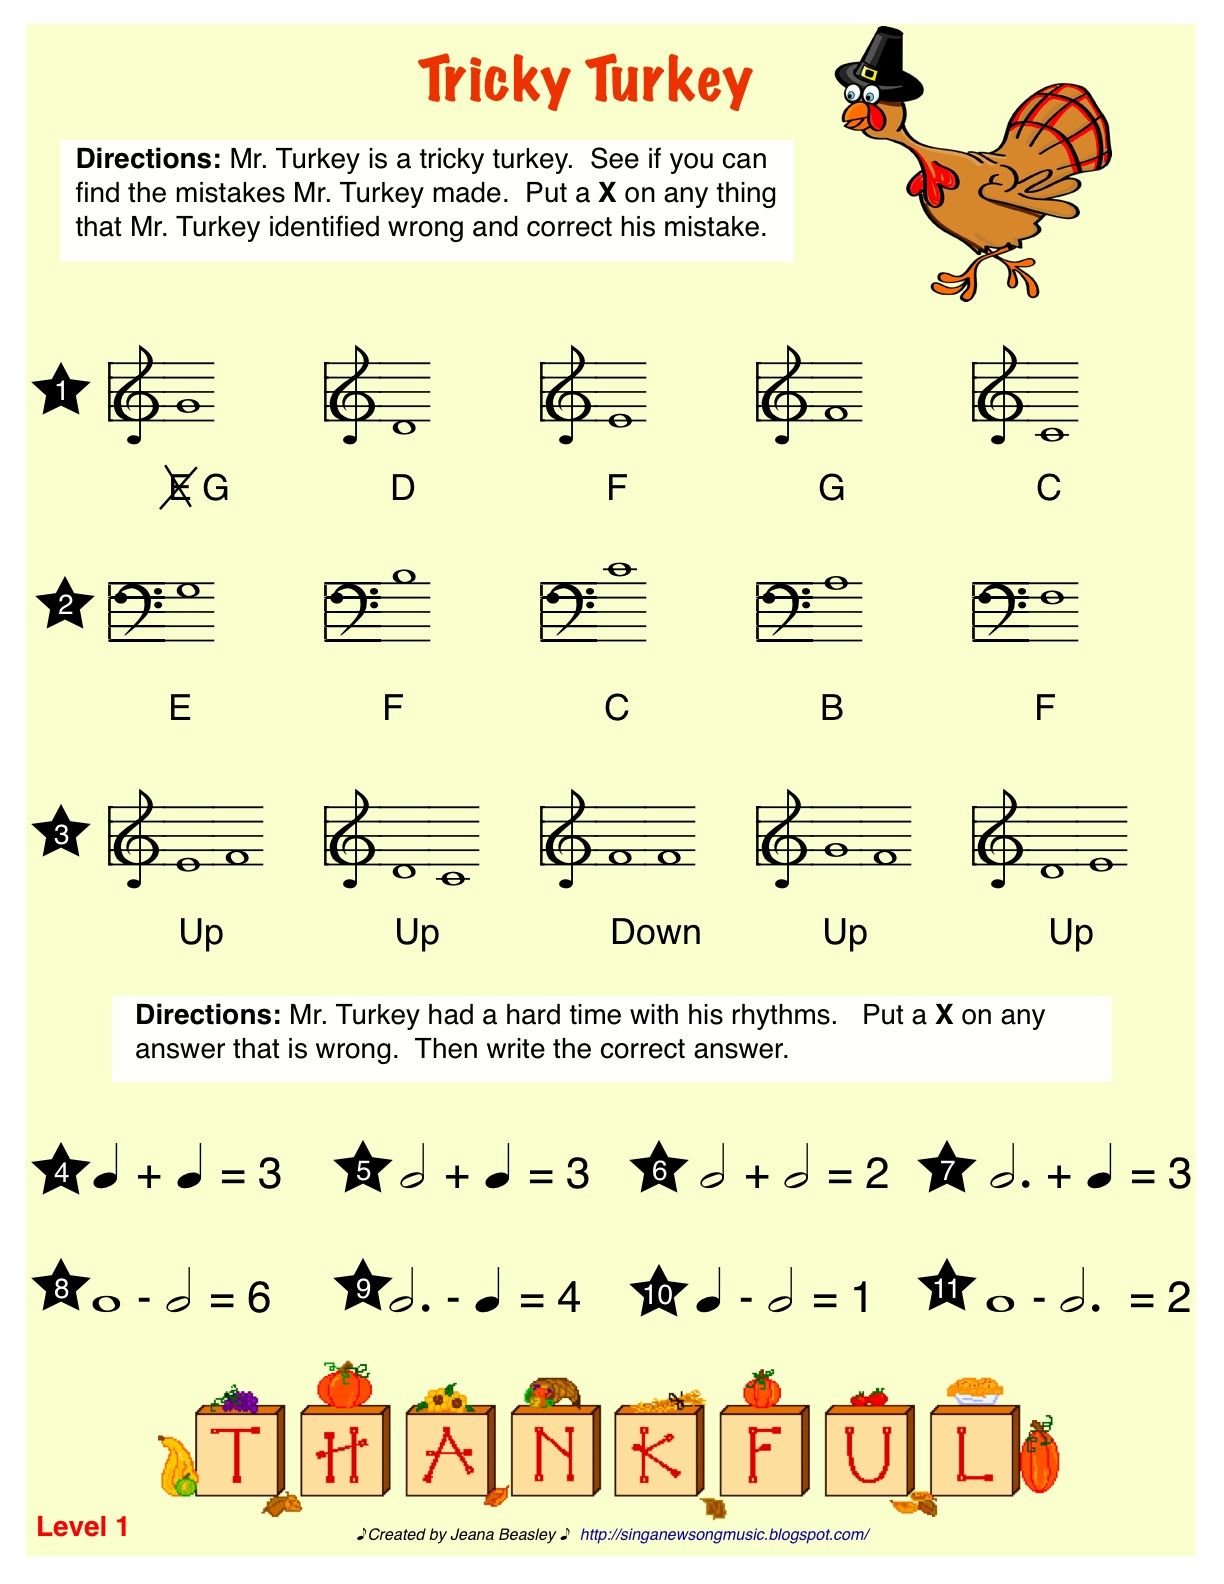 Awesome Blog With Tons Of Activities And Printables Sing A New Song Tricky Turkey